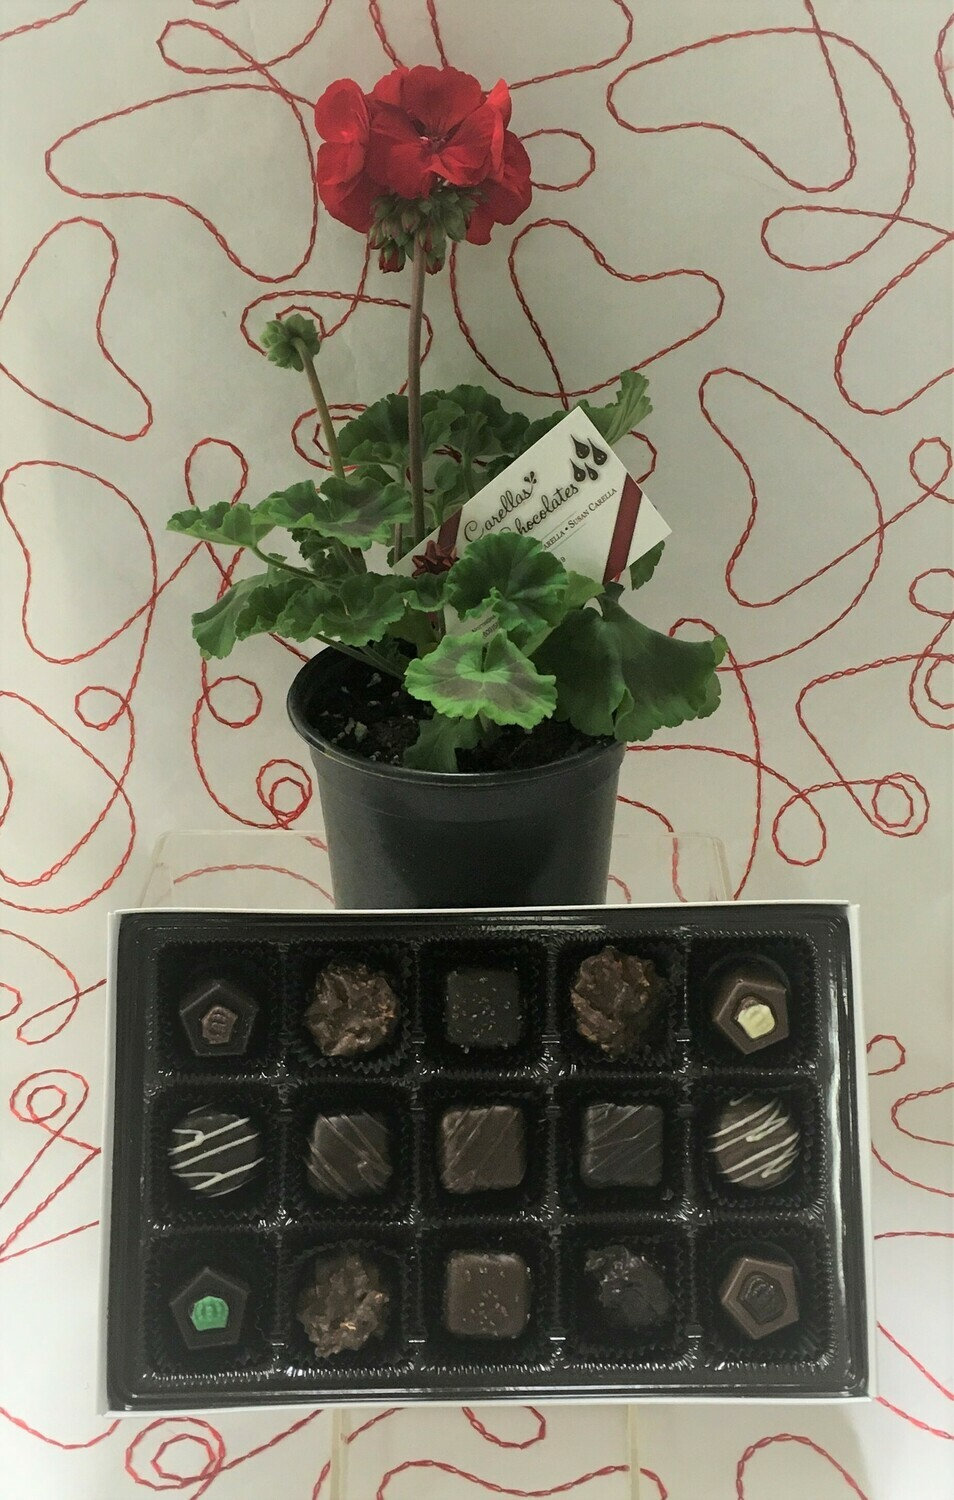 Send a Thank you to that Special Hero!  A 15 Piece Assortment of Milk and Dark Chocolate Favorites and a potted Geranium.